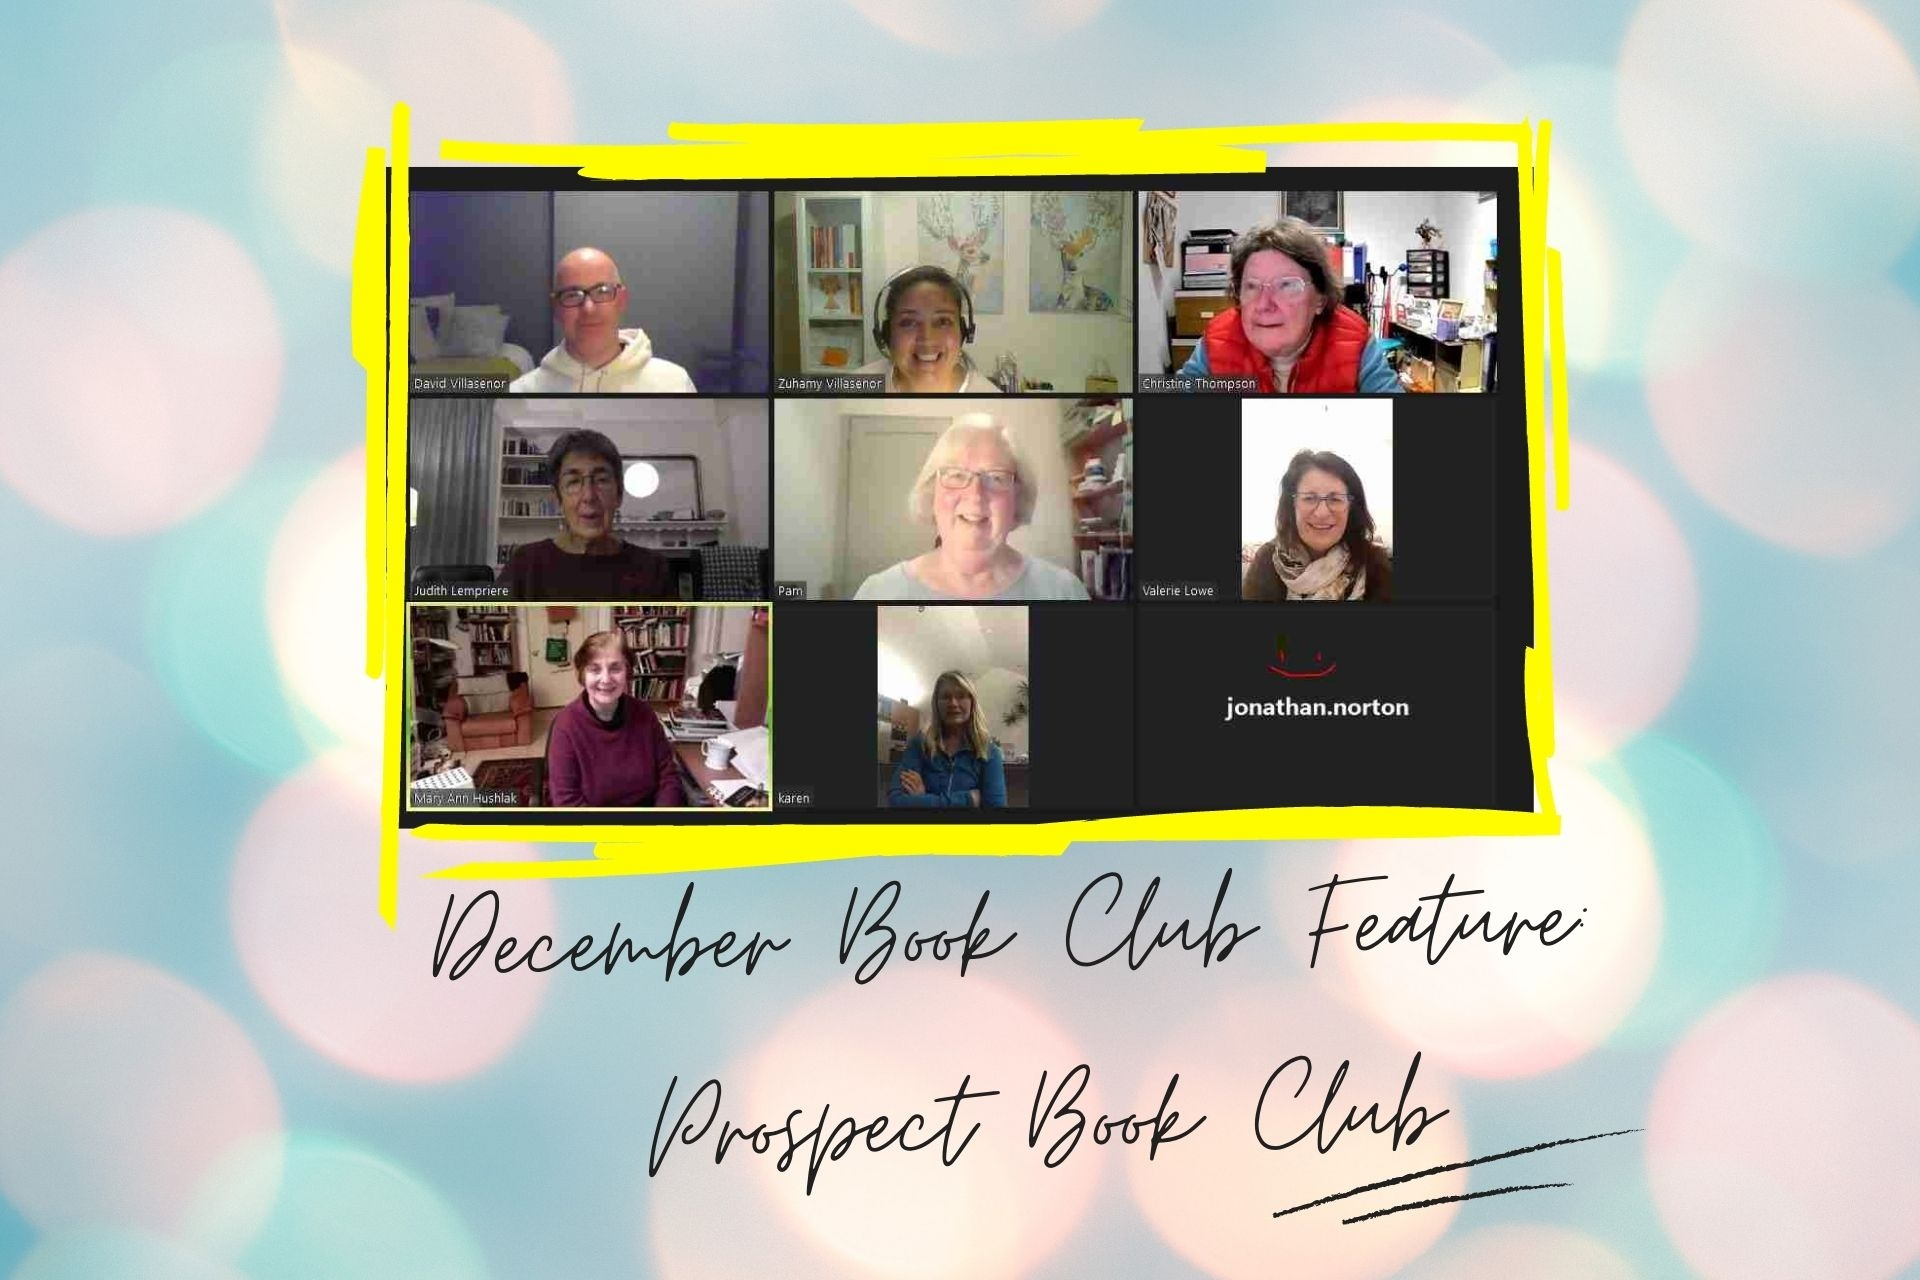 LoveReading Book Club Feature #19: Prospect Book Club